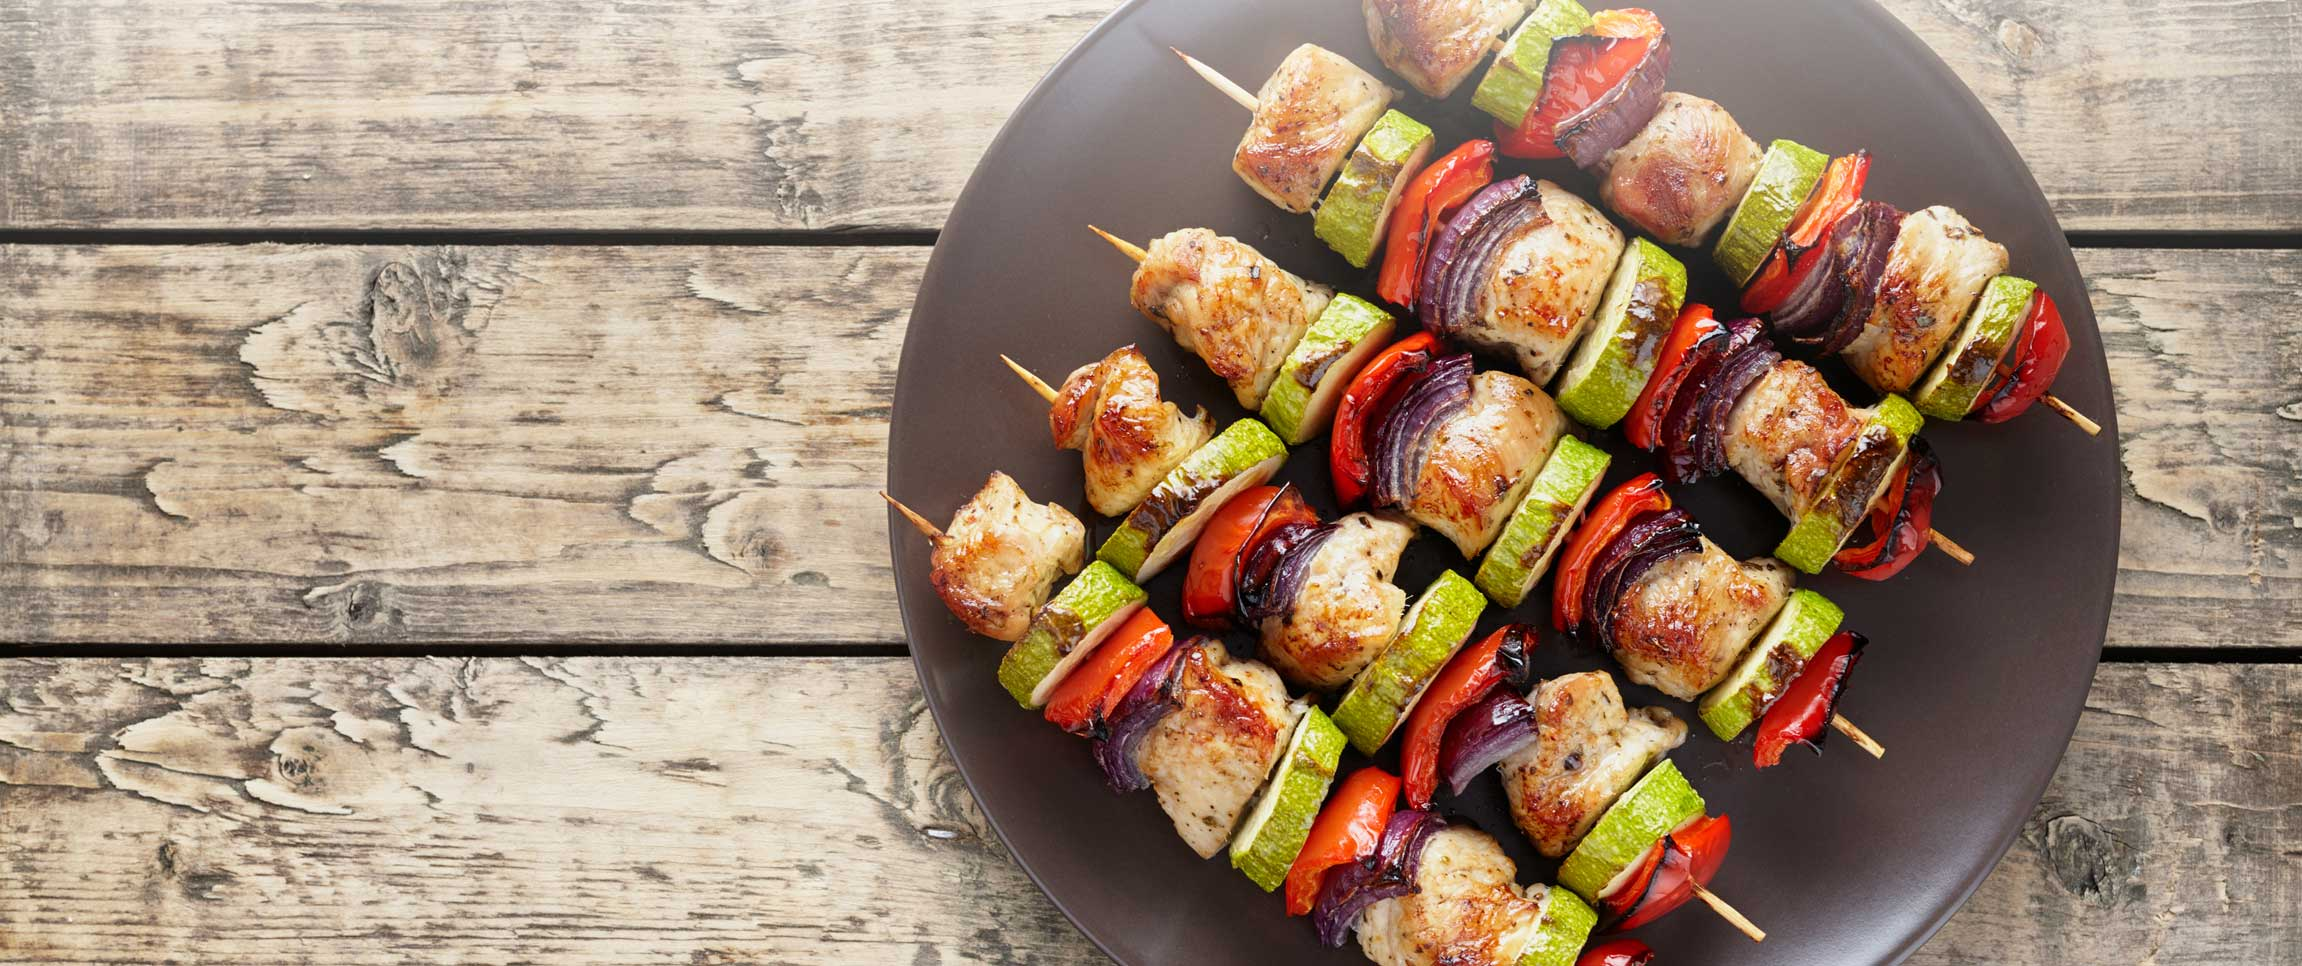 Grilled Turkey and Vegetable Shish Kabob